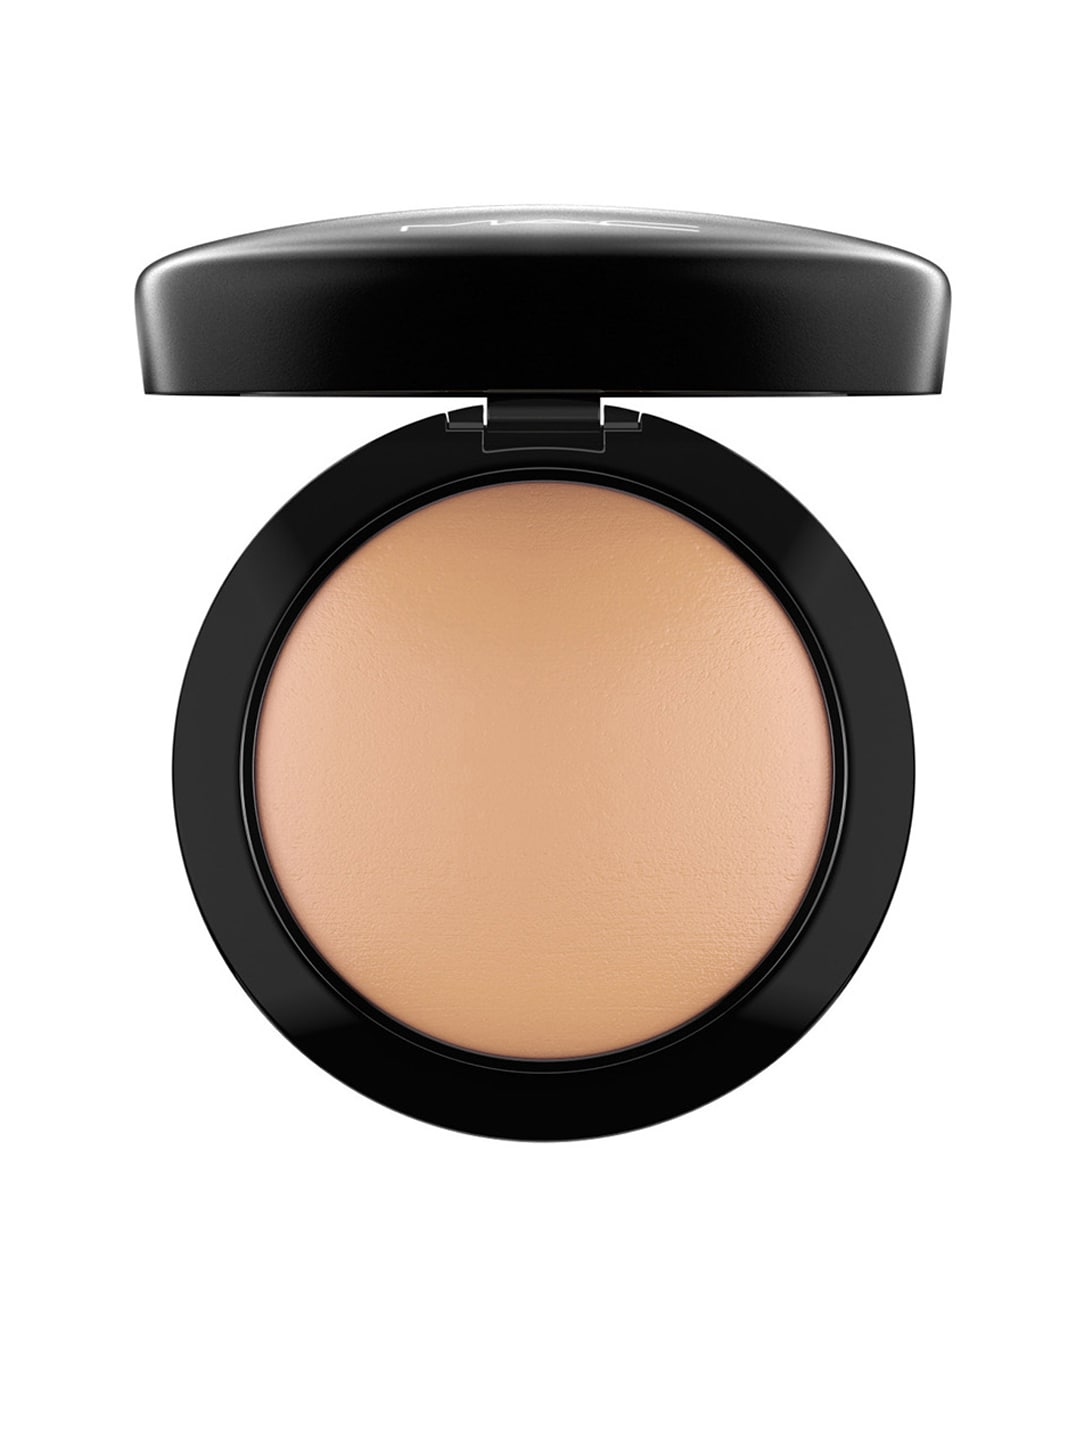 M.A.C Medium Tan Mineralize Skinfinish Compact image